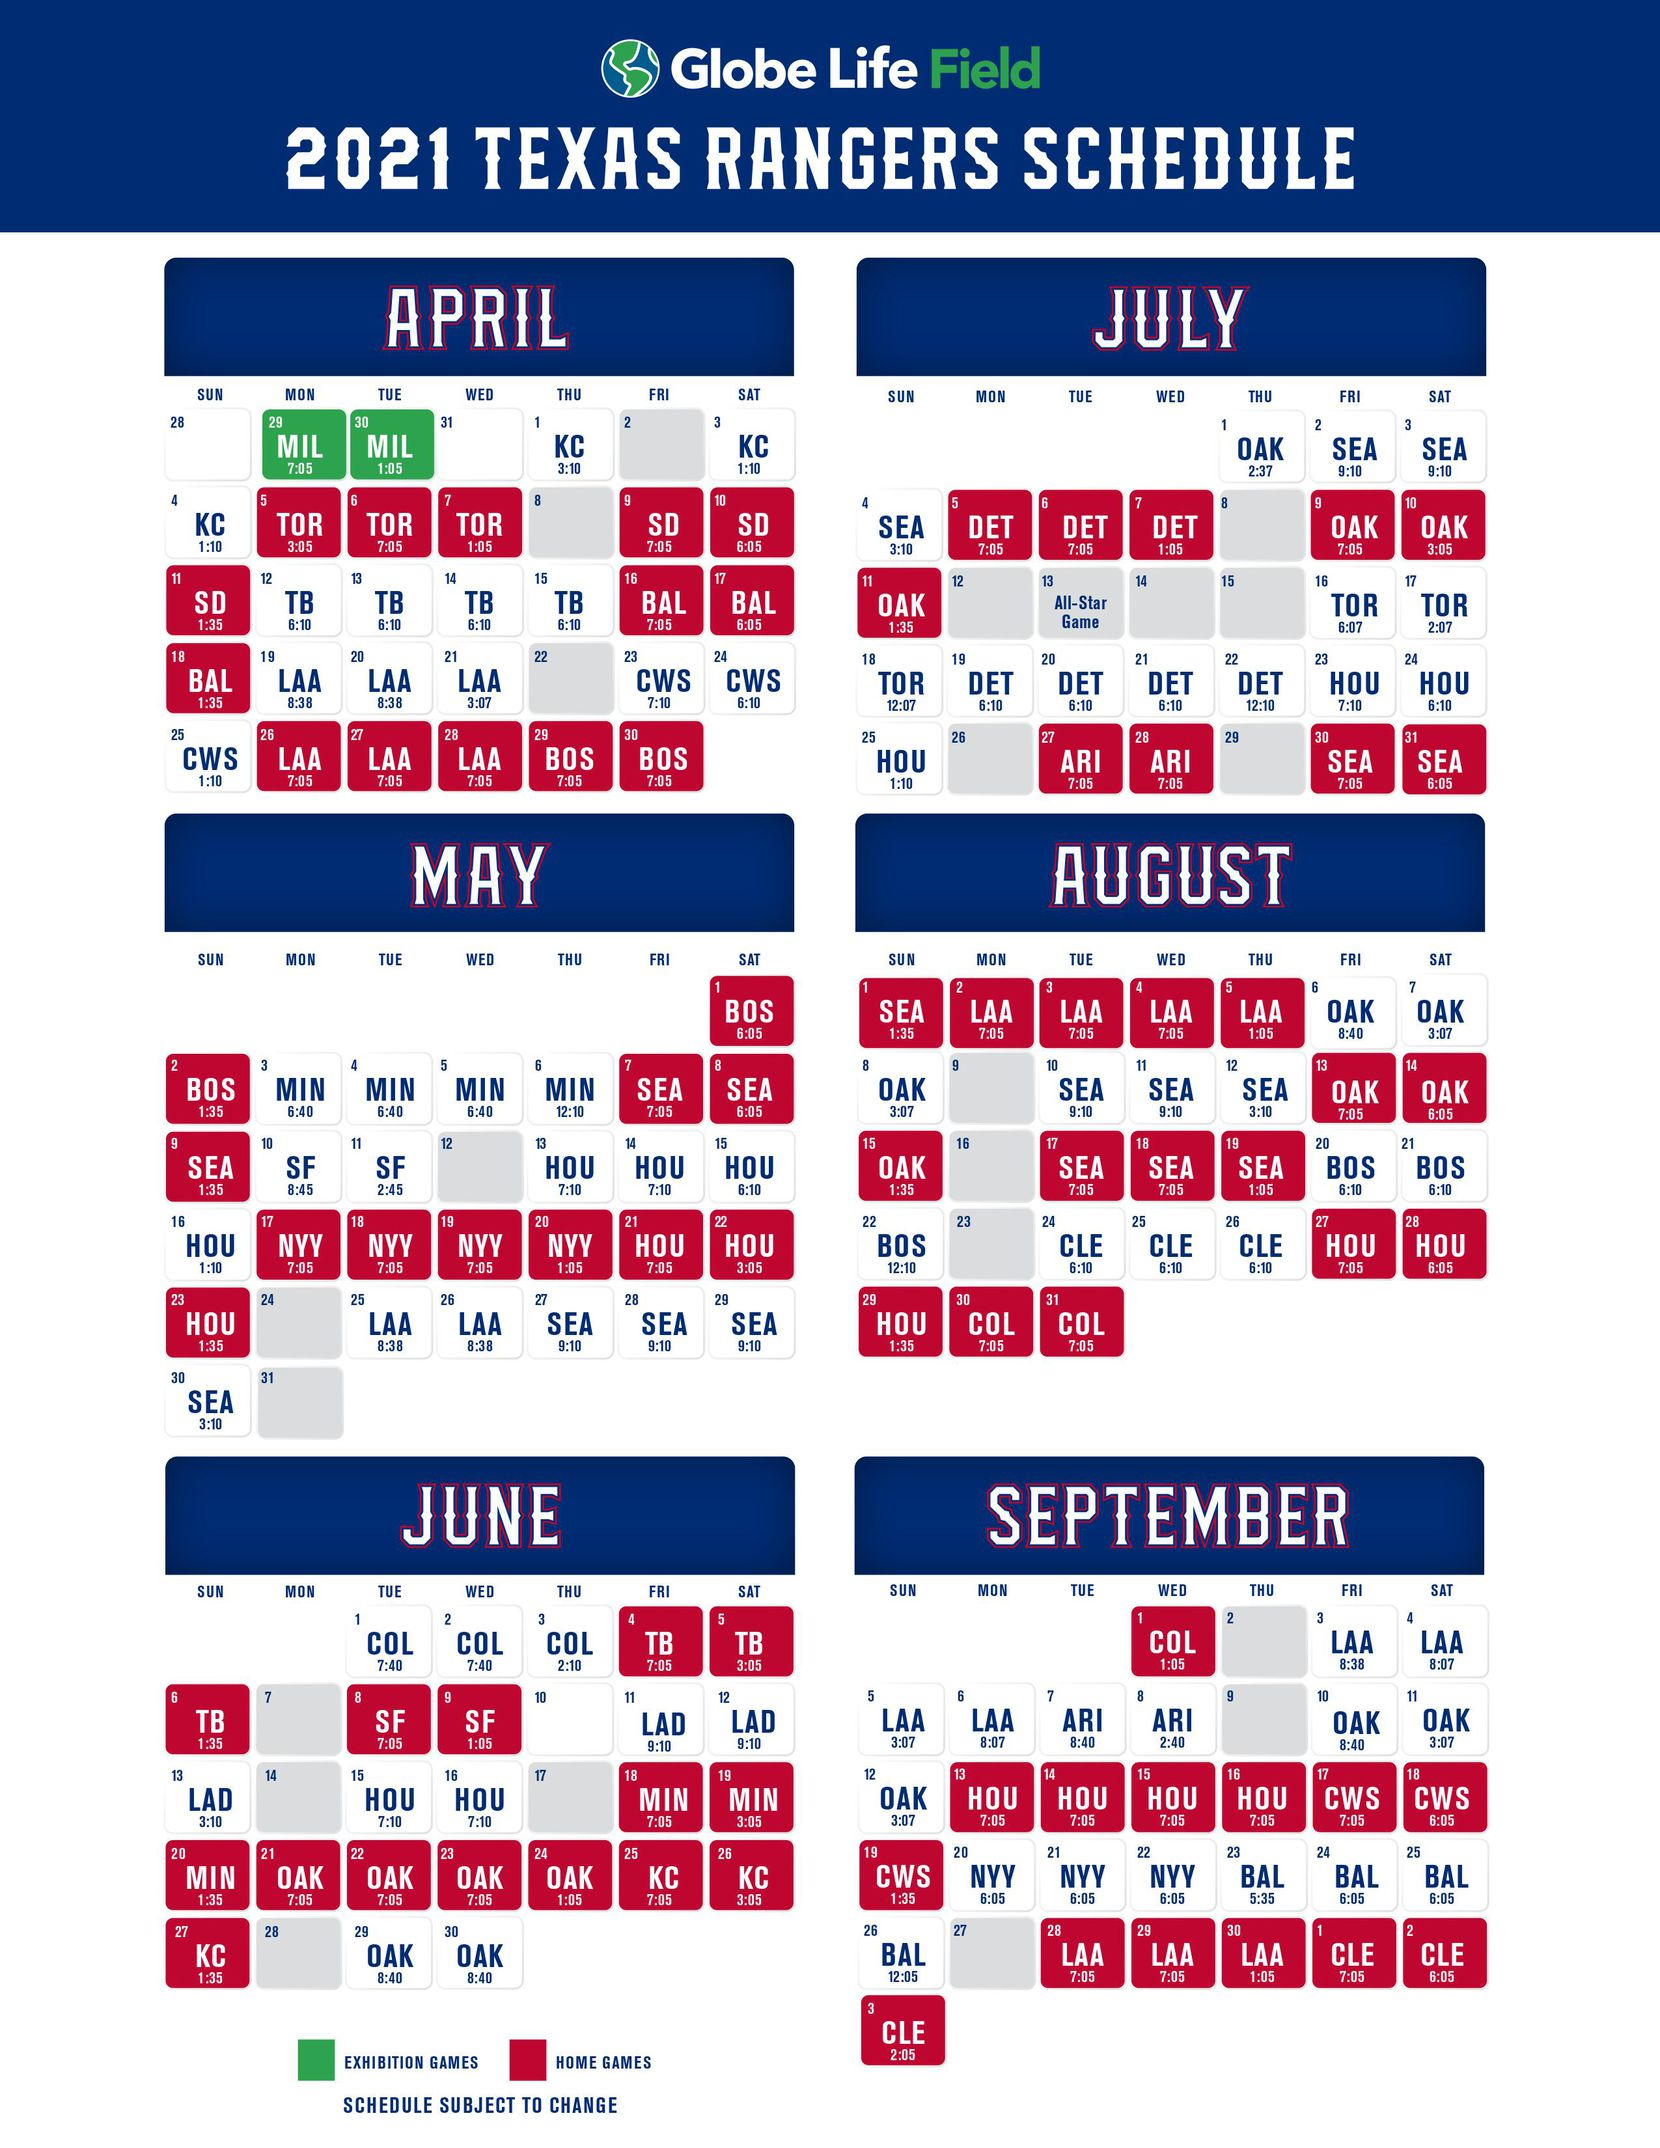 Texas Rangers schedule for the 2021 MLB season.